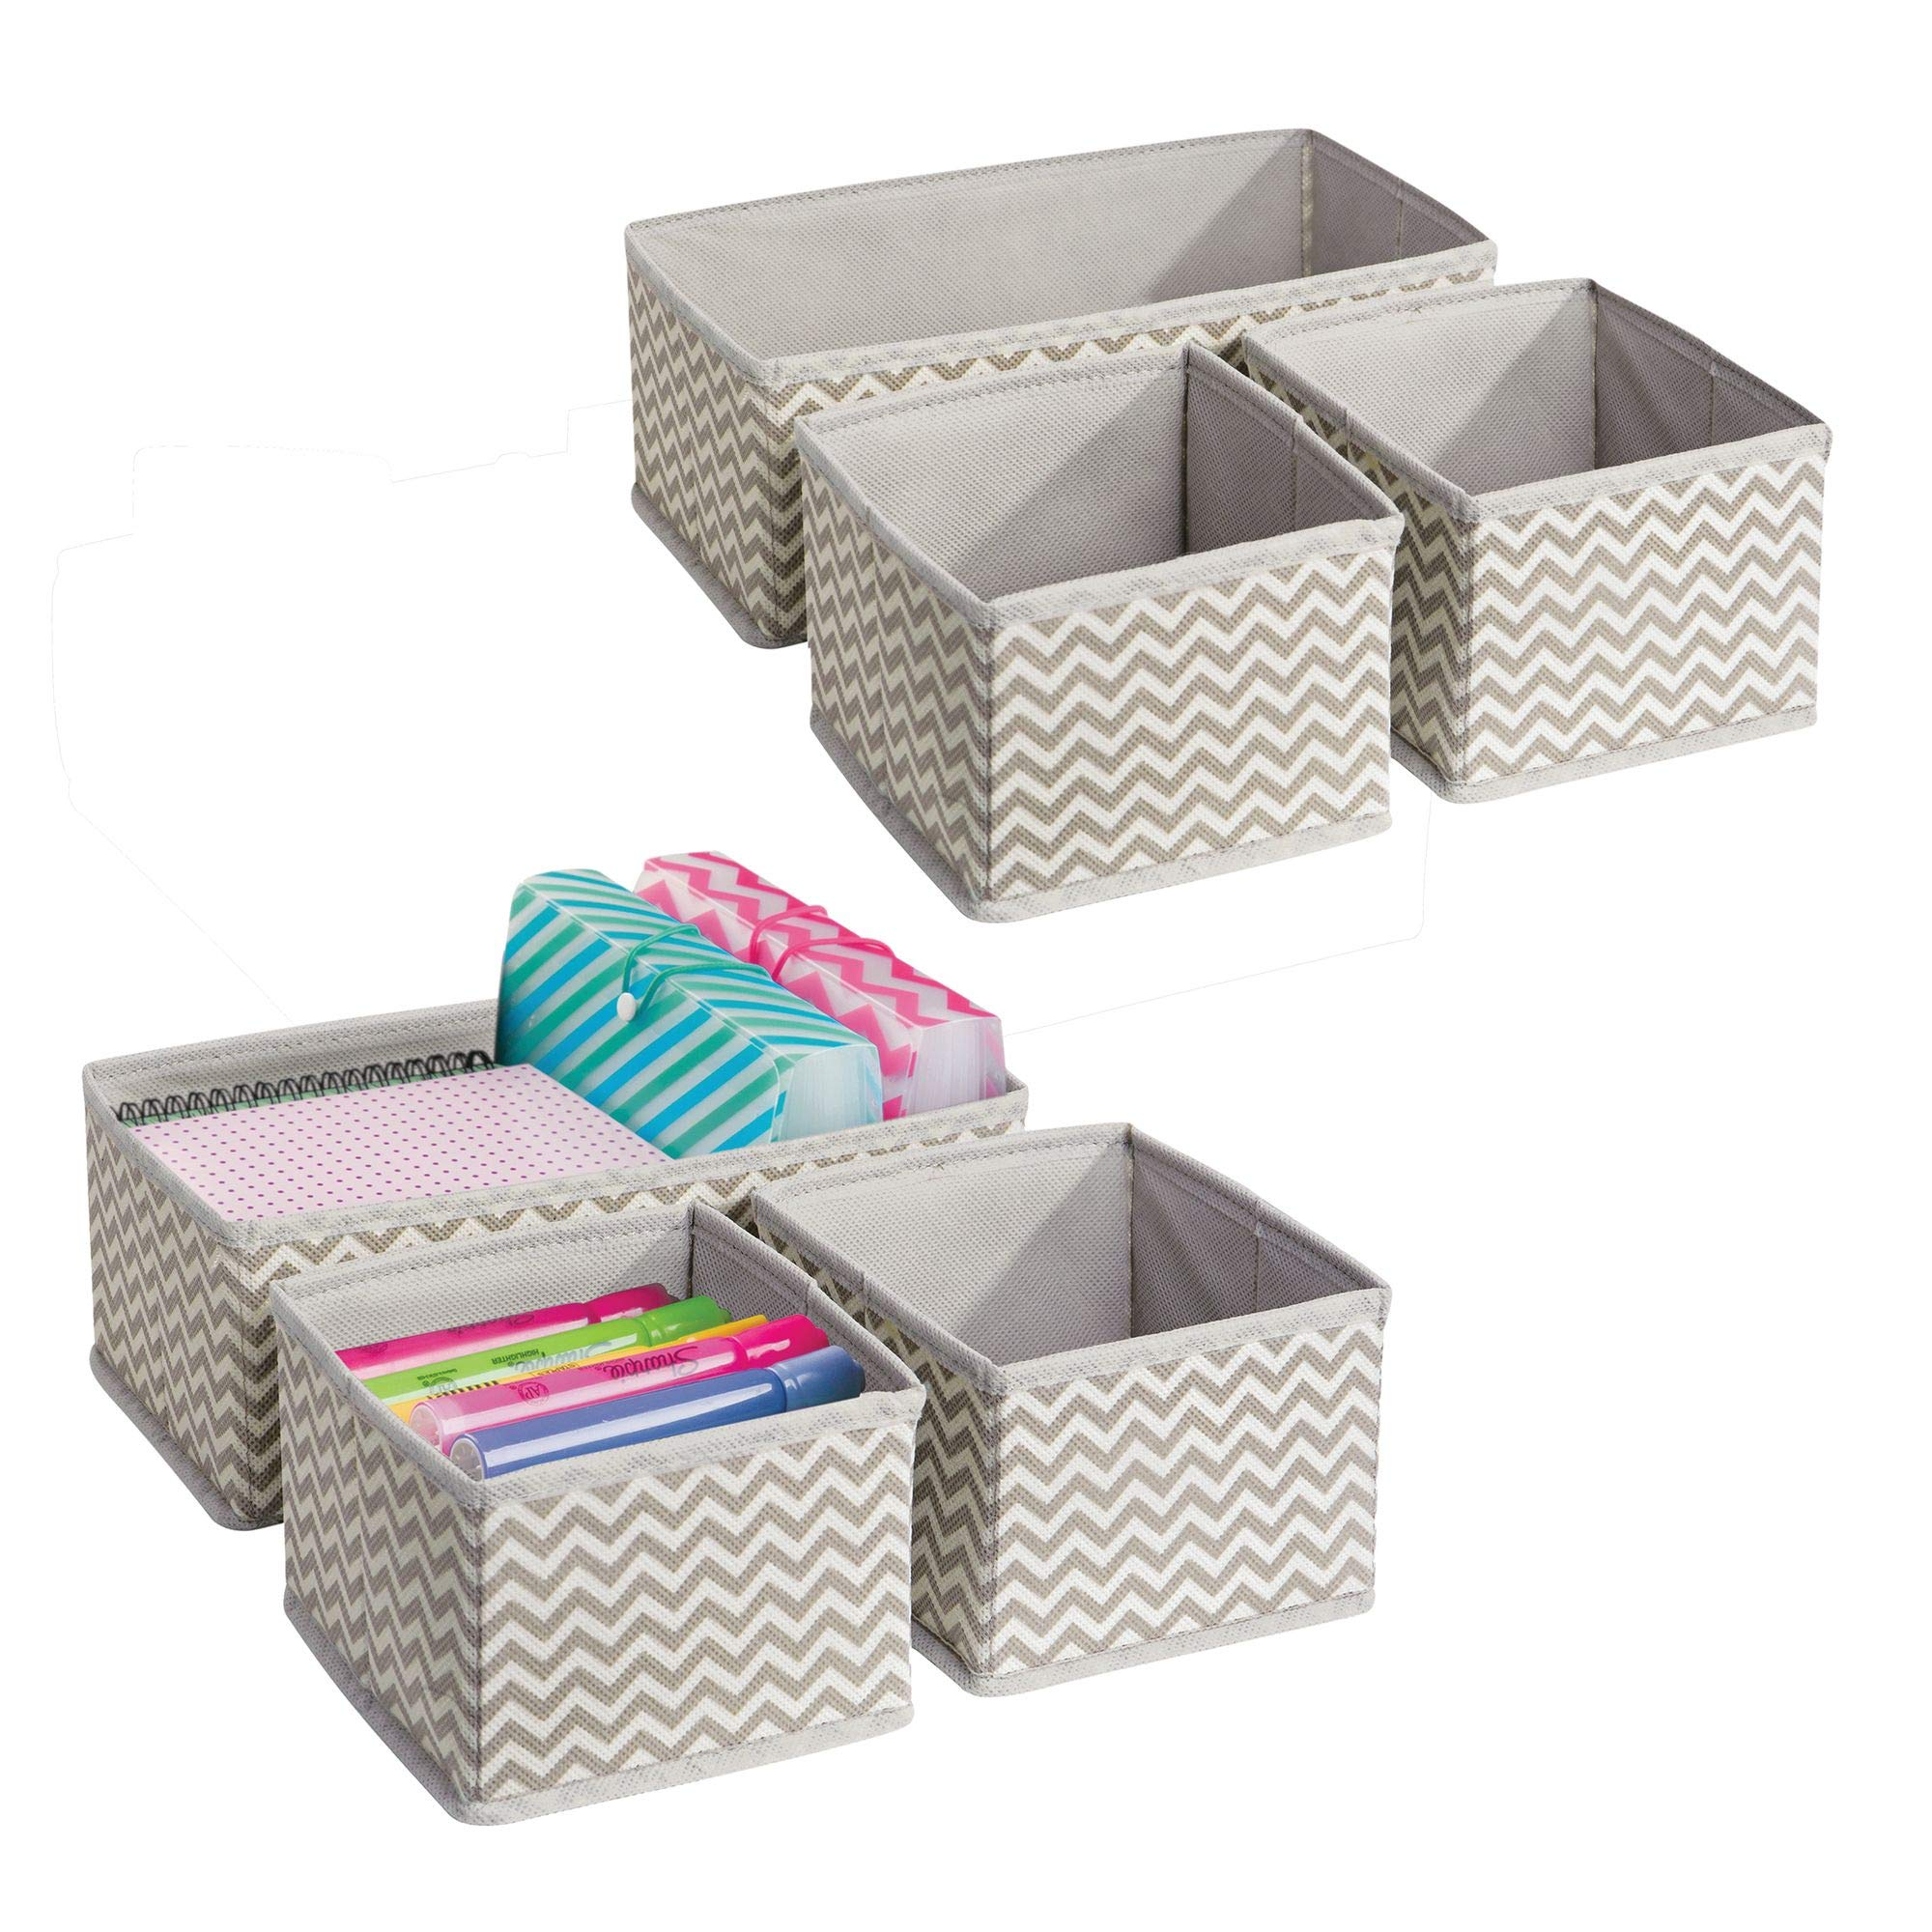 mDesign Chevron Fabric Desk Drawer Storage Organizer for Office Supplies, Highlighters, Pens, Notepads, Scissors, Tape - Set of 6, Taupe/Natural